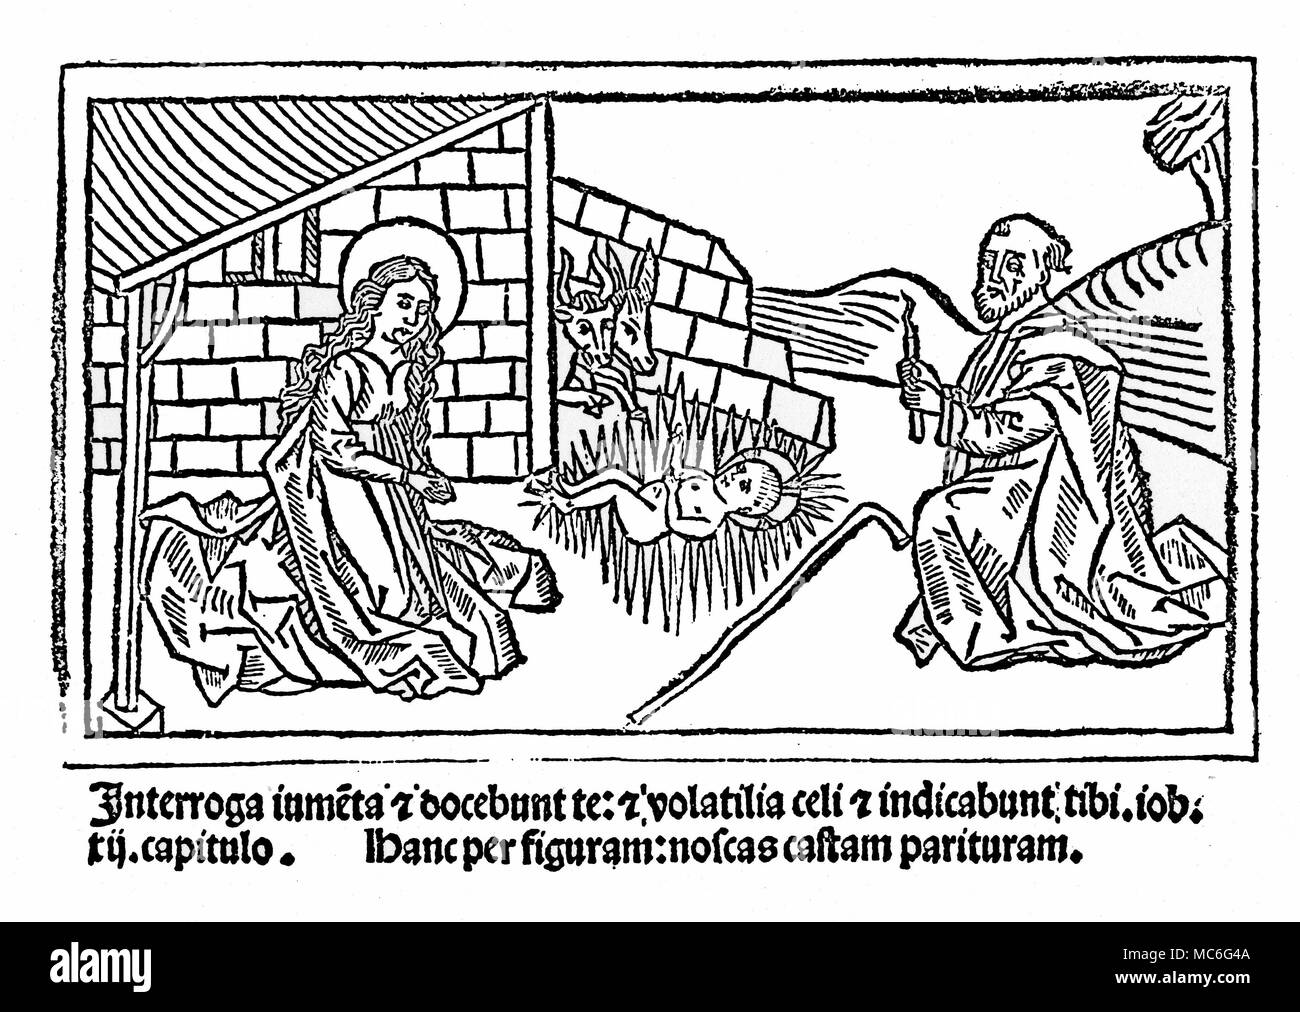 CHRISTIANITY - VIRGIN BIRTH The miracle of the Virgin birth - illustrative of the text in Luke's Gospel.   The woodcut is from Franciscus de Retza, Defensorium inviolatae virginitas Mariae, late 15th century, arguing for the legitimacy of the fact of the Virgin birth, by listing other miracles that are known to have occurred. - Stock Image